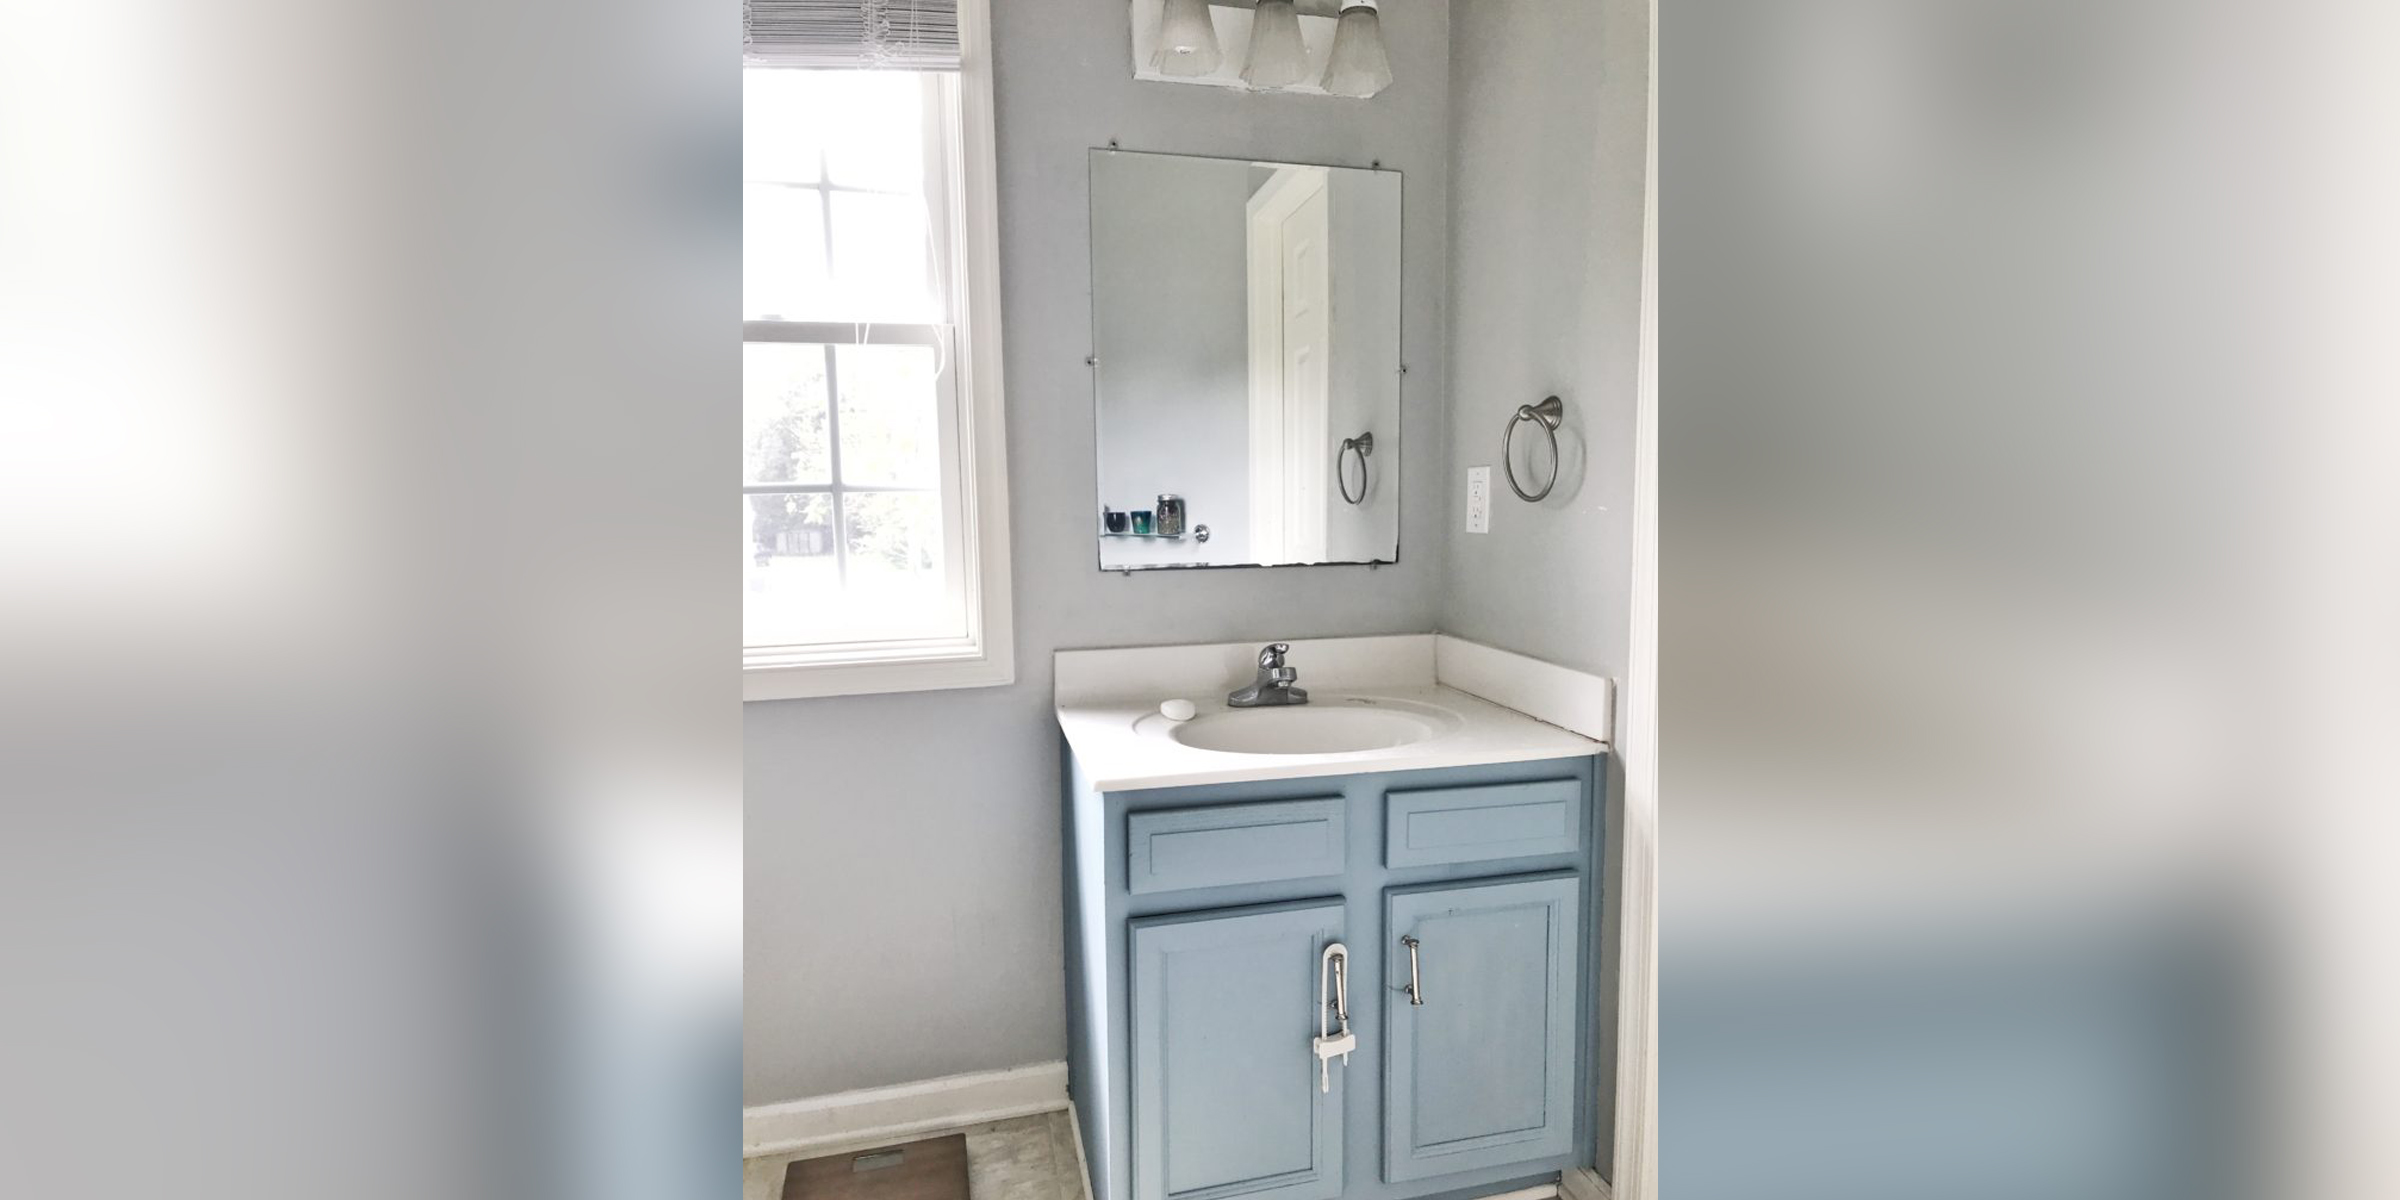 See this bathroom vanity completed transformed after paint and a few accessories